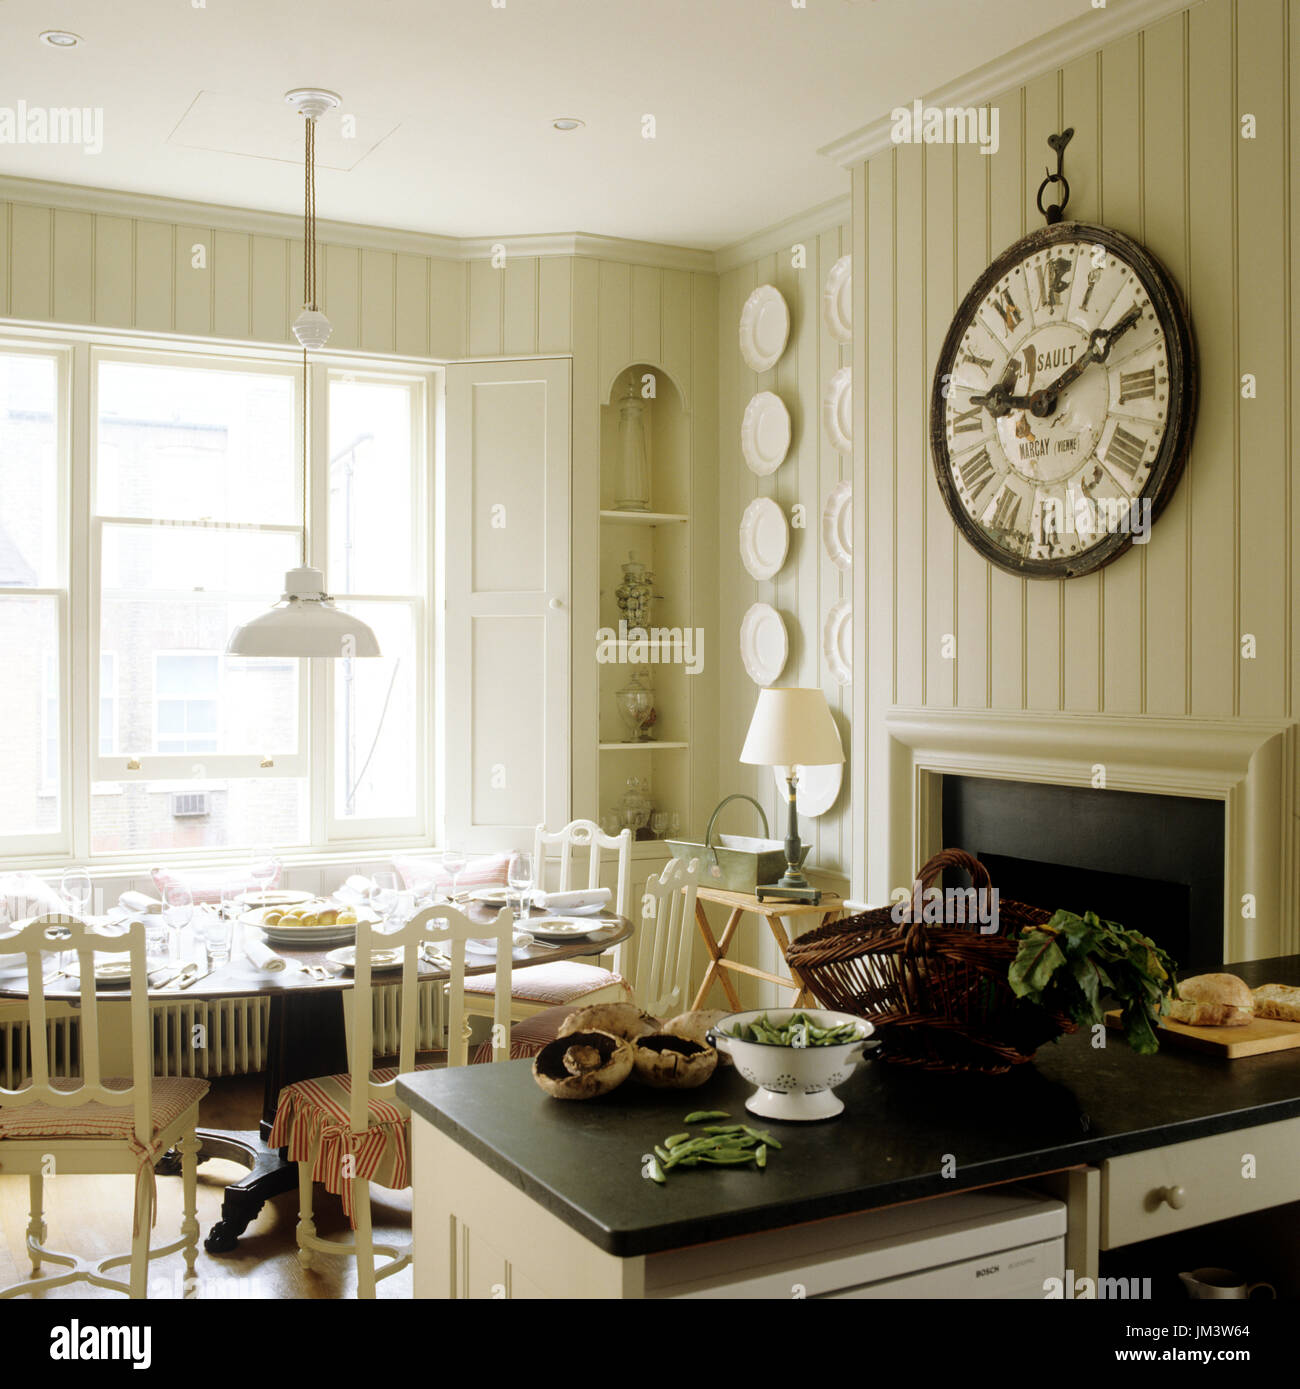 Country style dining room by kitchen - Stock Image